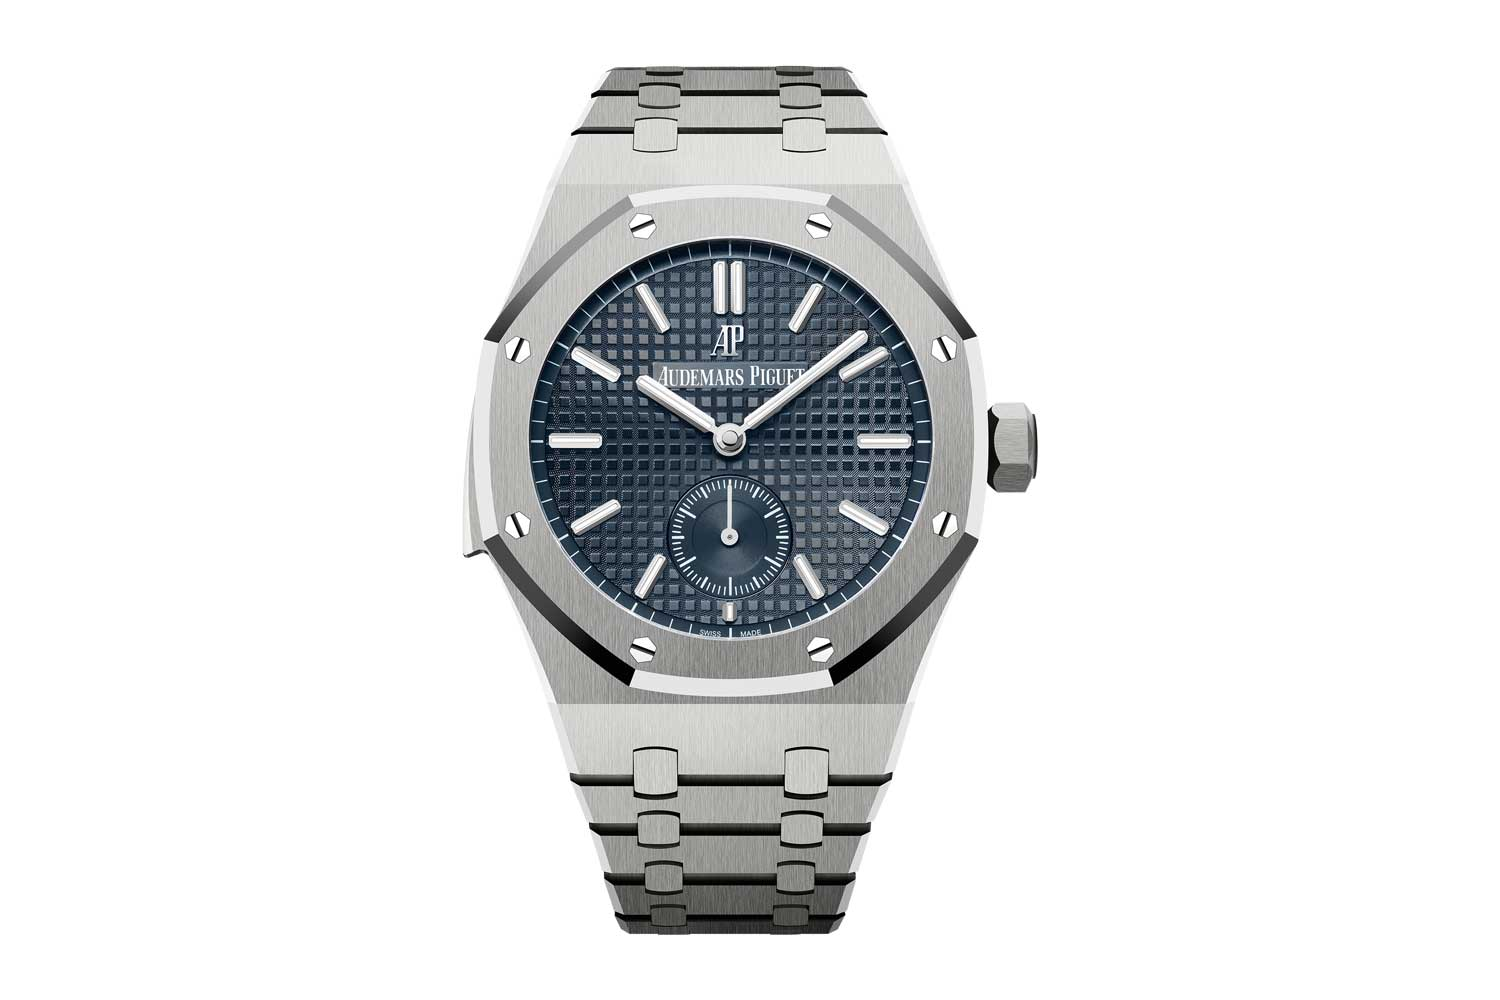 Royal Oak Minute Repeater Supersonnerie in titanium, ref. 26591TI.OO.1252TI.01; limited edition of 20 pieces